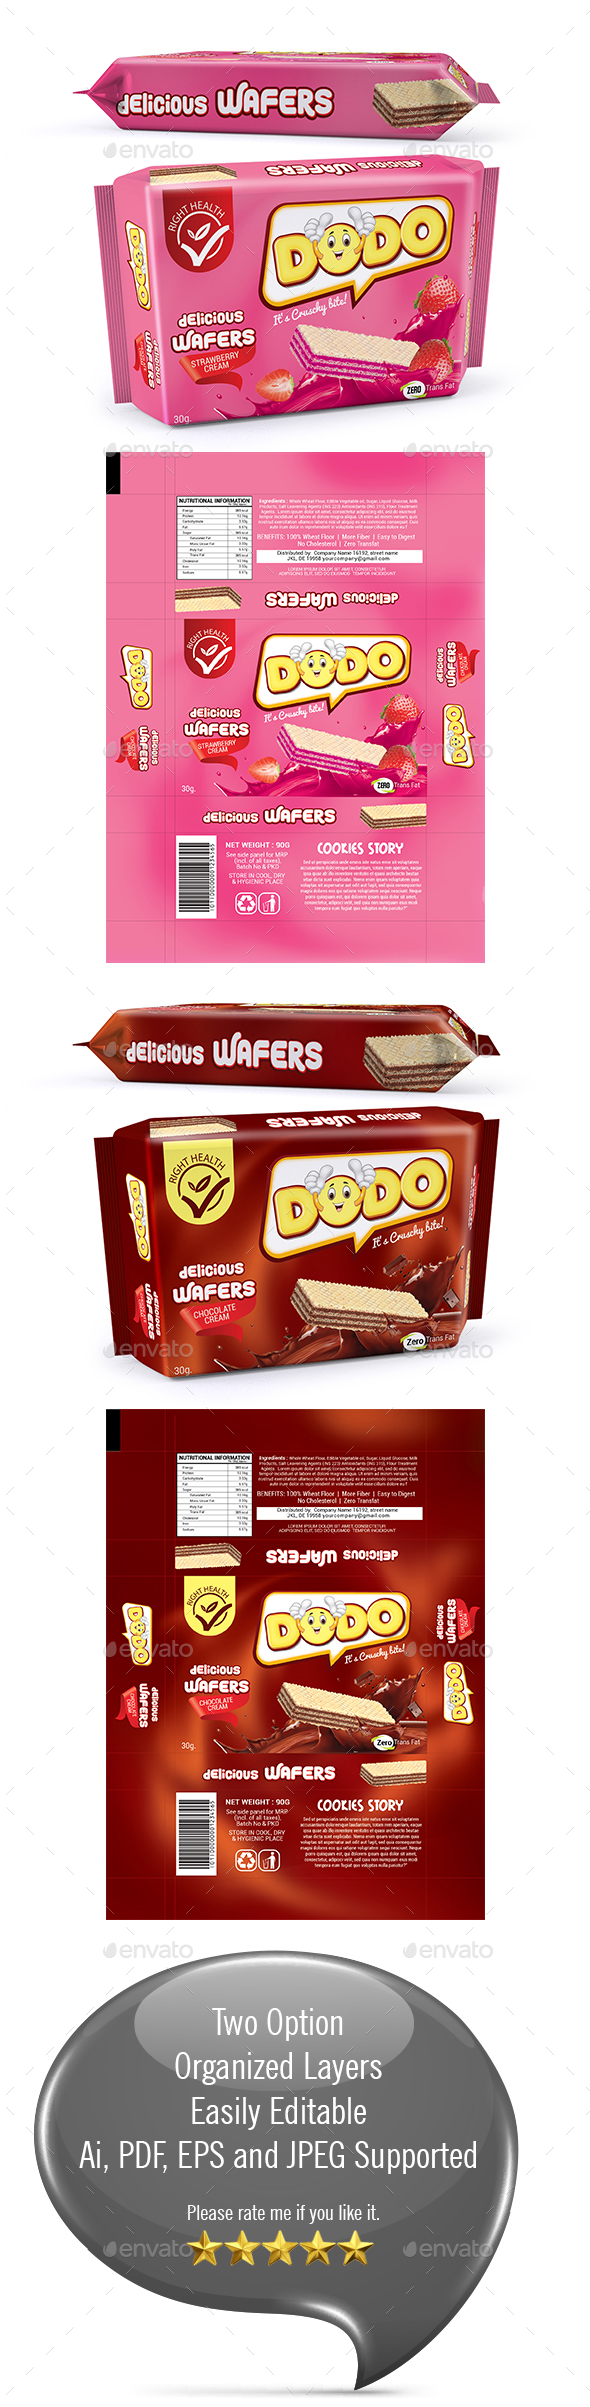 Wafers Biscuits Packaging Template - Packaging Print Templates